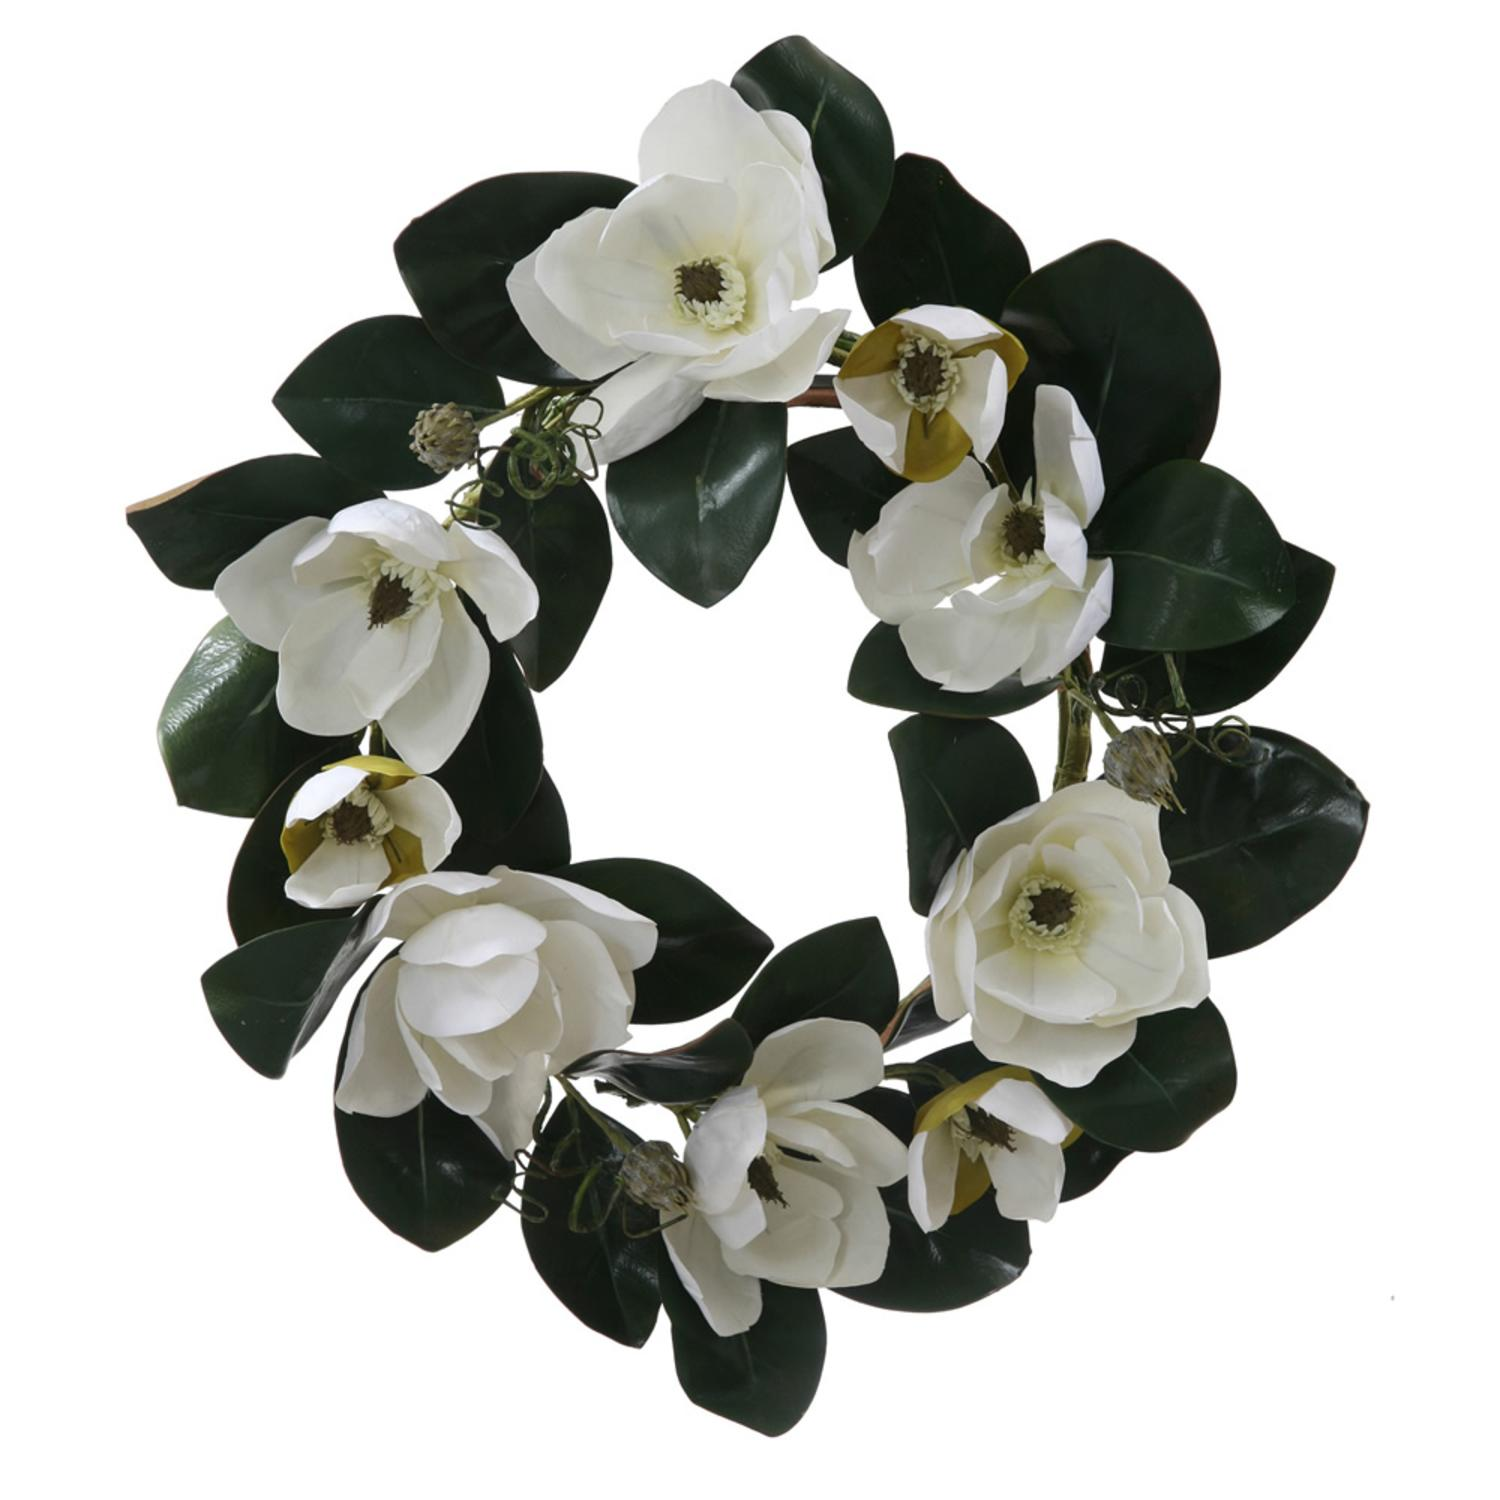 26 White Magnolia Flower And Leaves Artificial Silk Floral Wreath